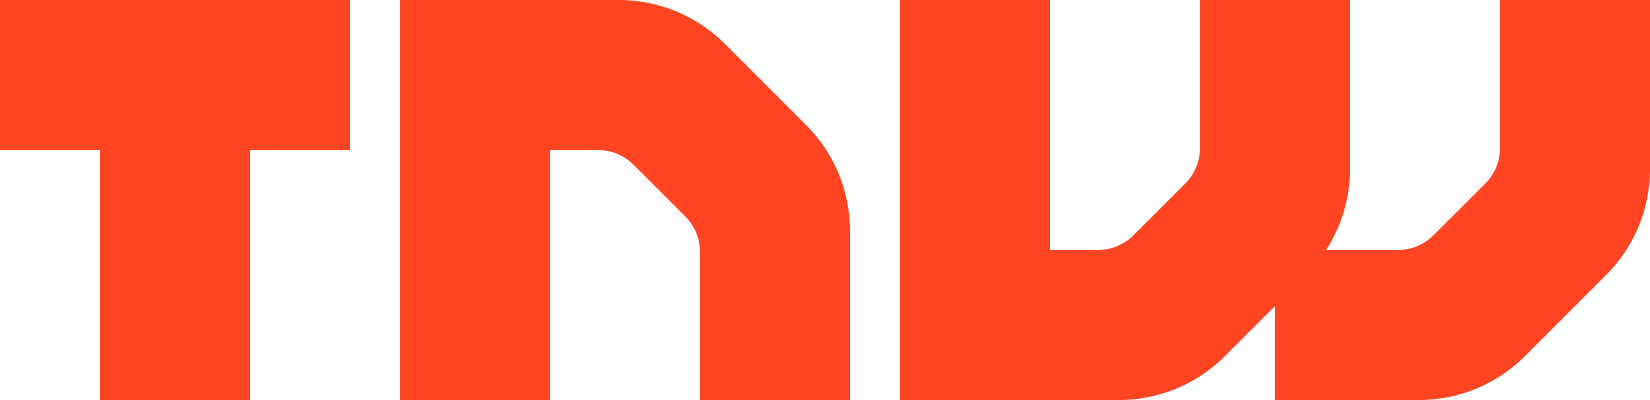 tnw-logo-red.png